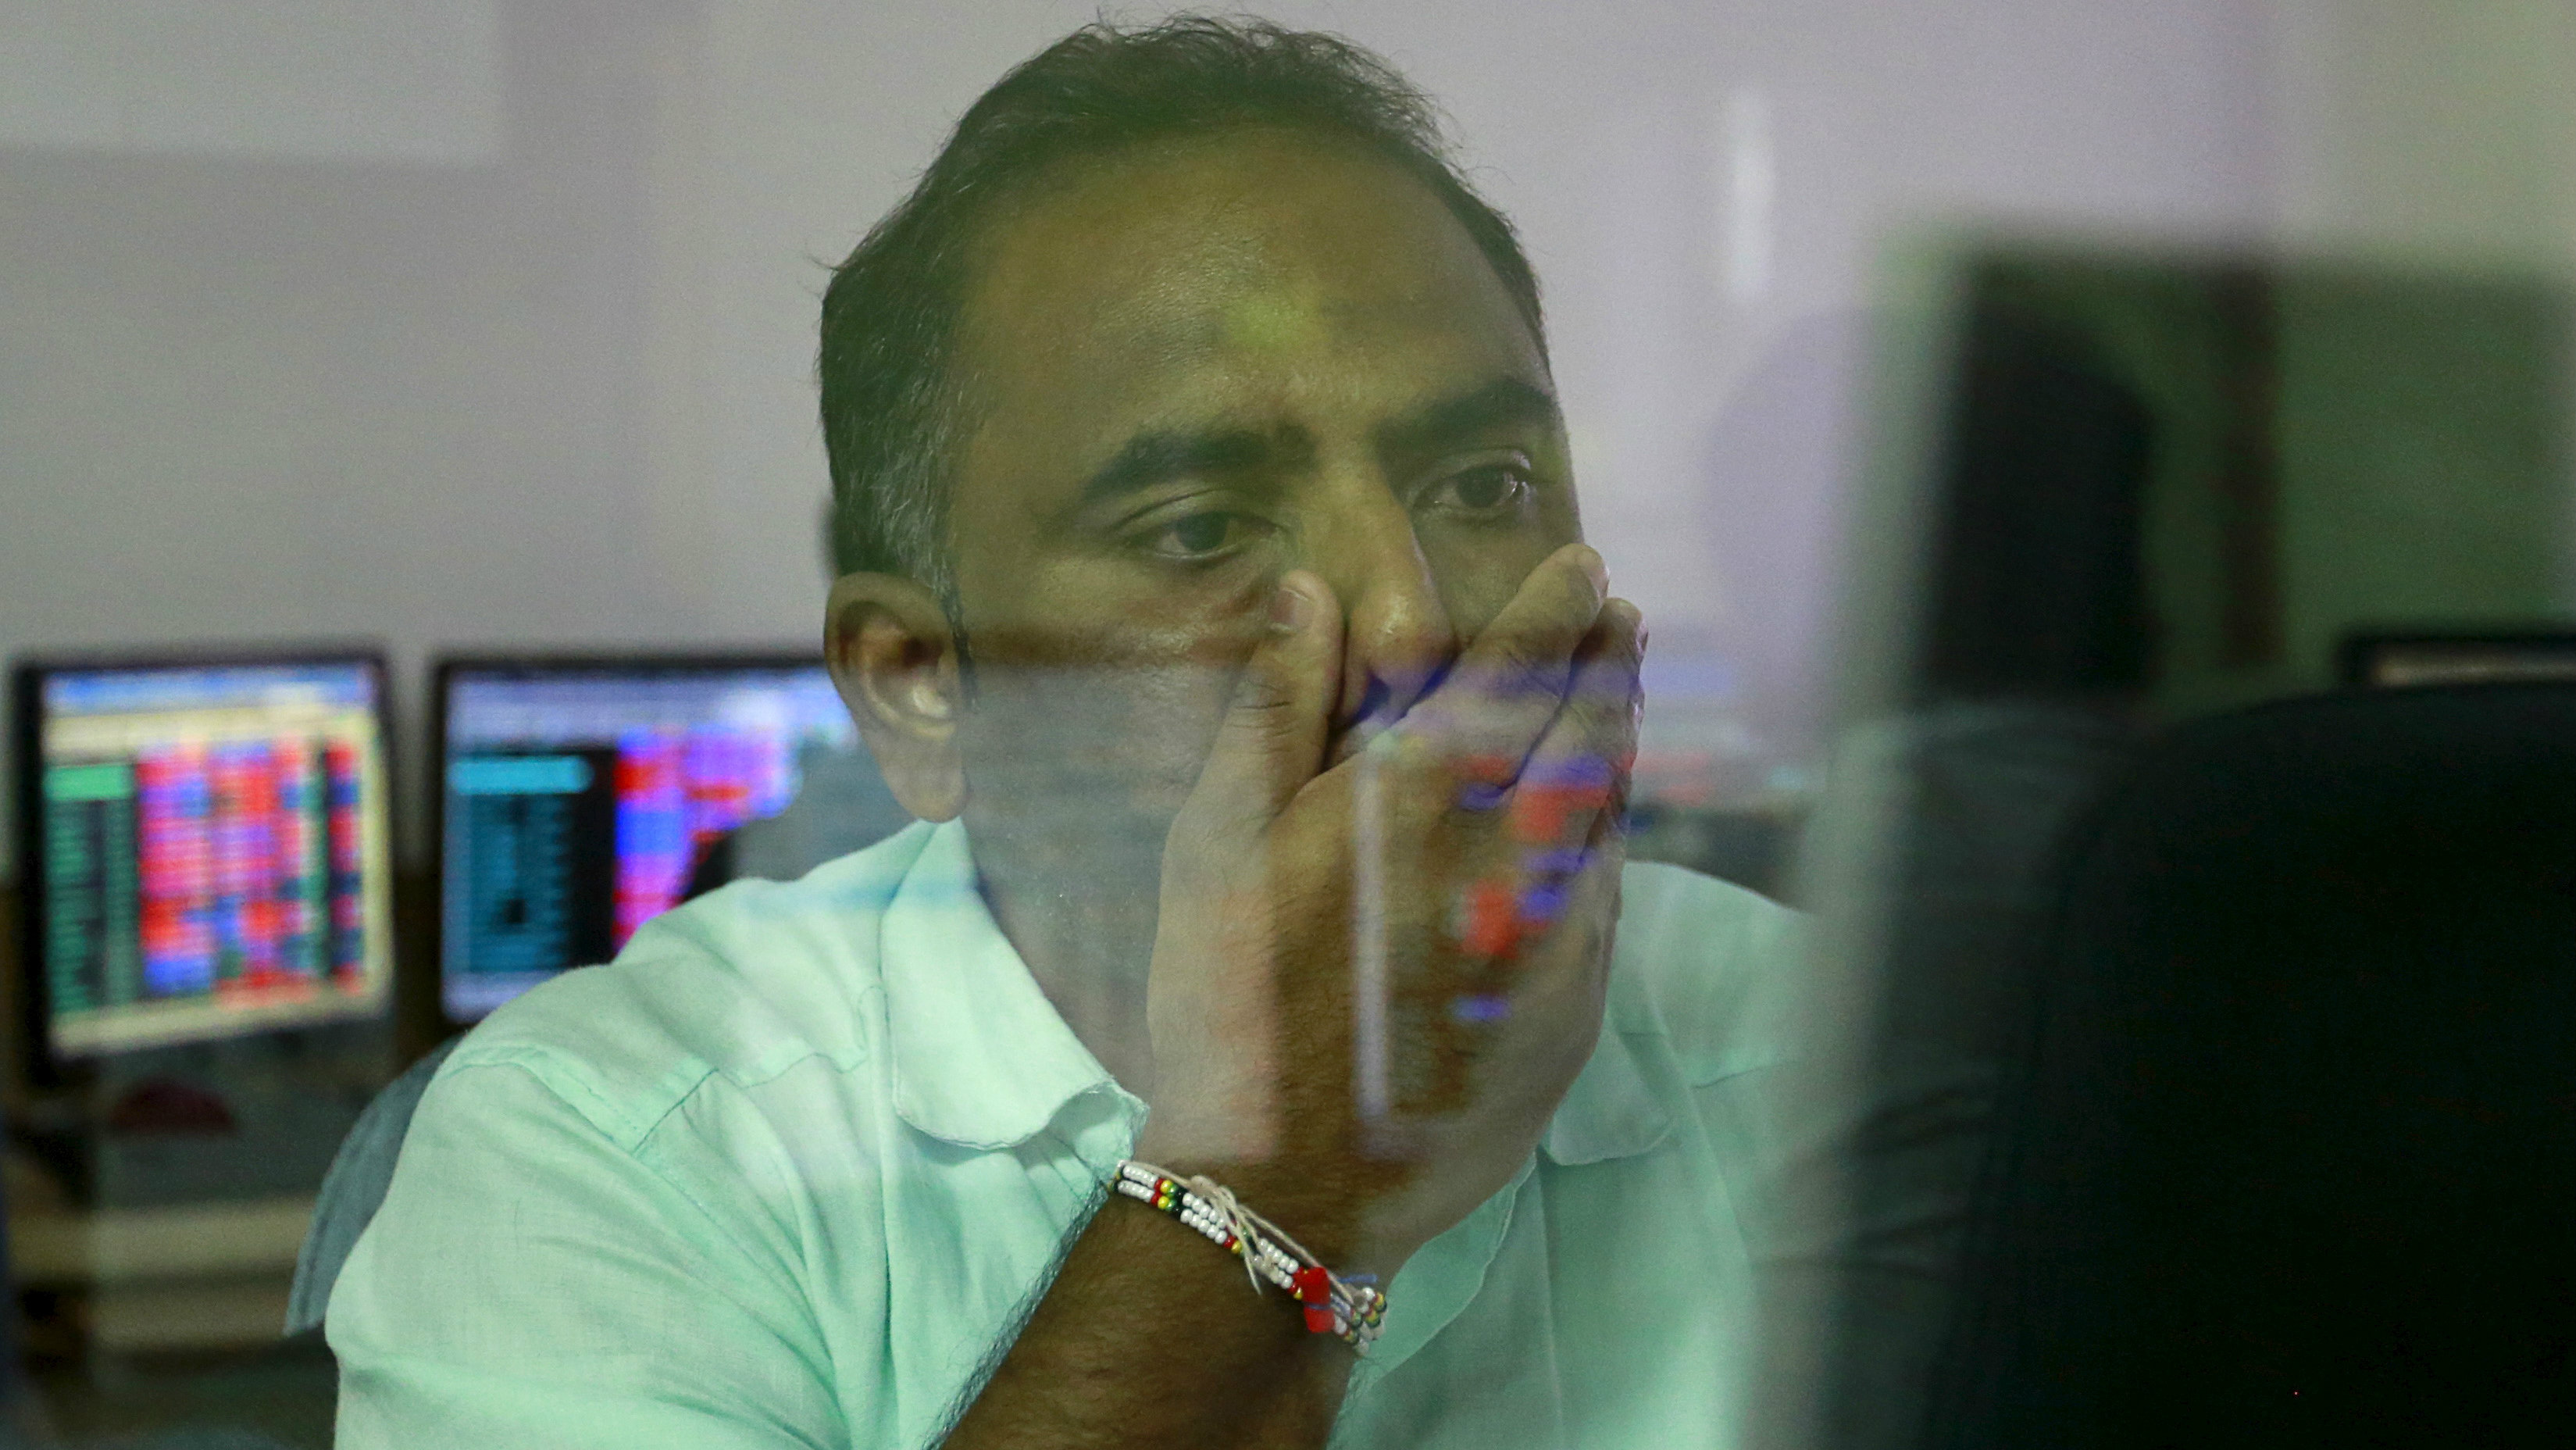 A broker reacts while trading at his computer terminal at a stock brokerage firm in Mumbai, India, August 24, 2015. India's benchmark BSE index fell more than 5 percent on Monday to their lowest in a year, as a rout in Chinese equities sparked widespread unrest in global financial markets.